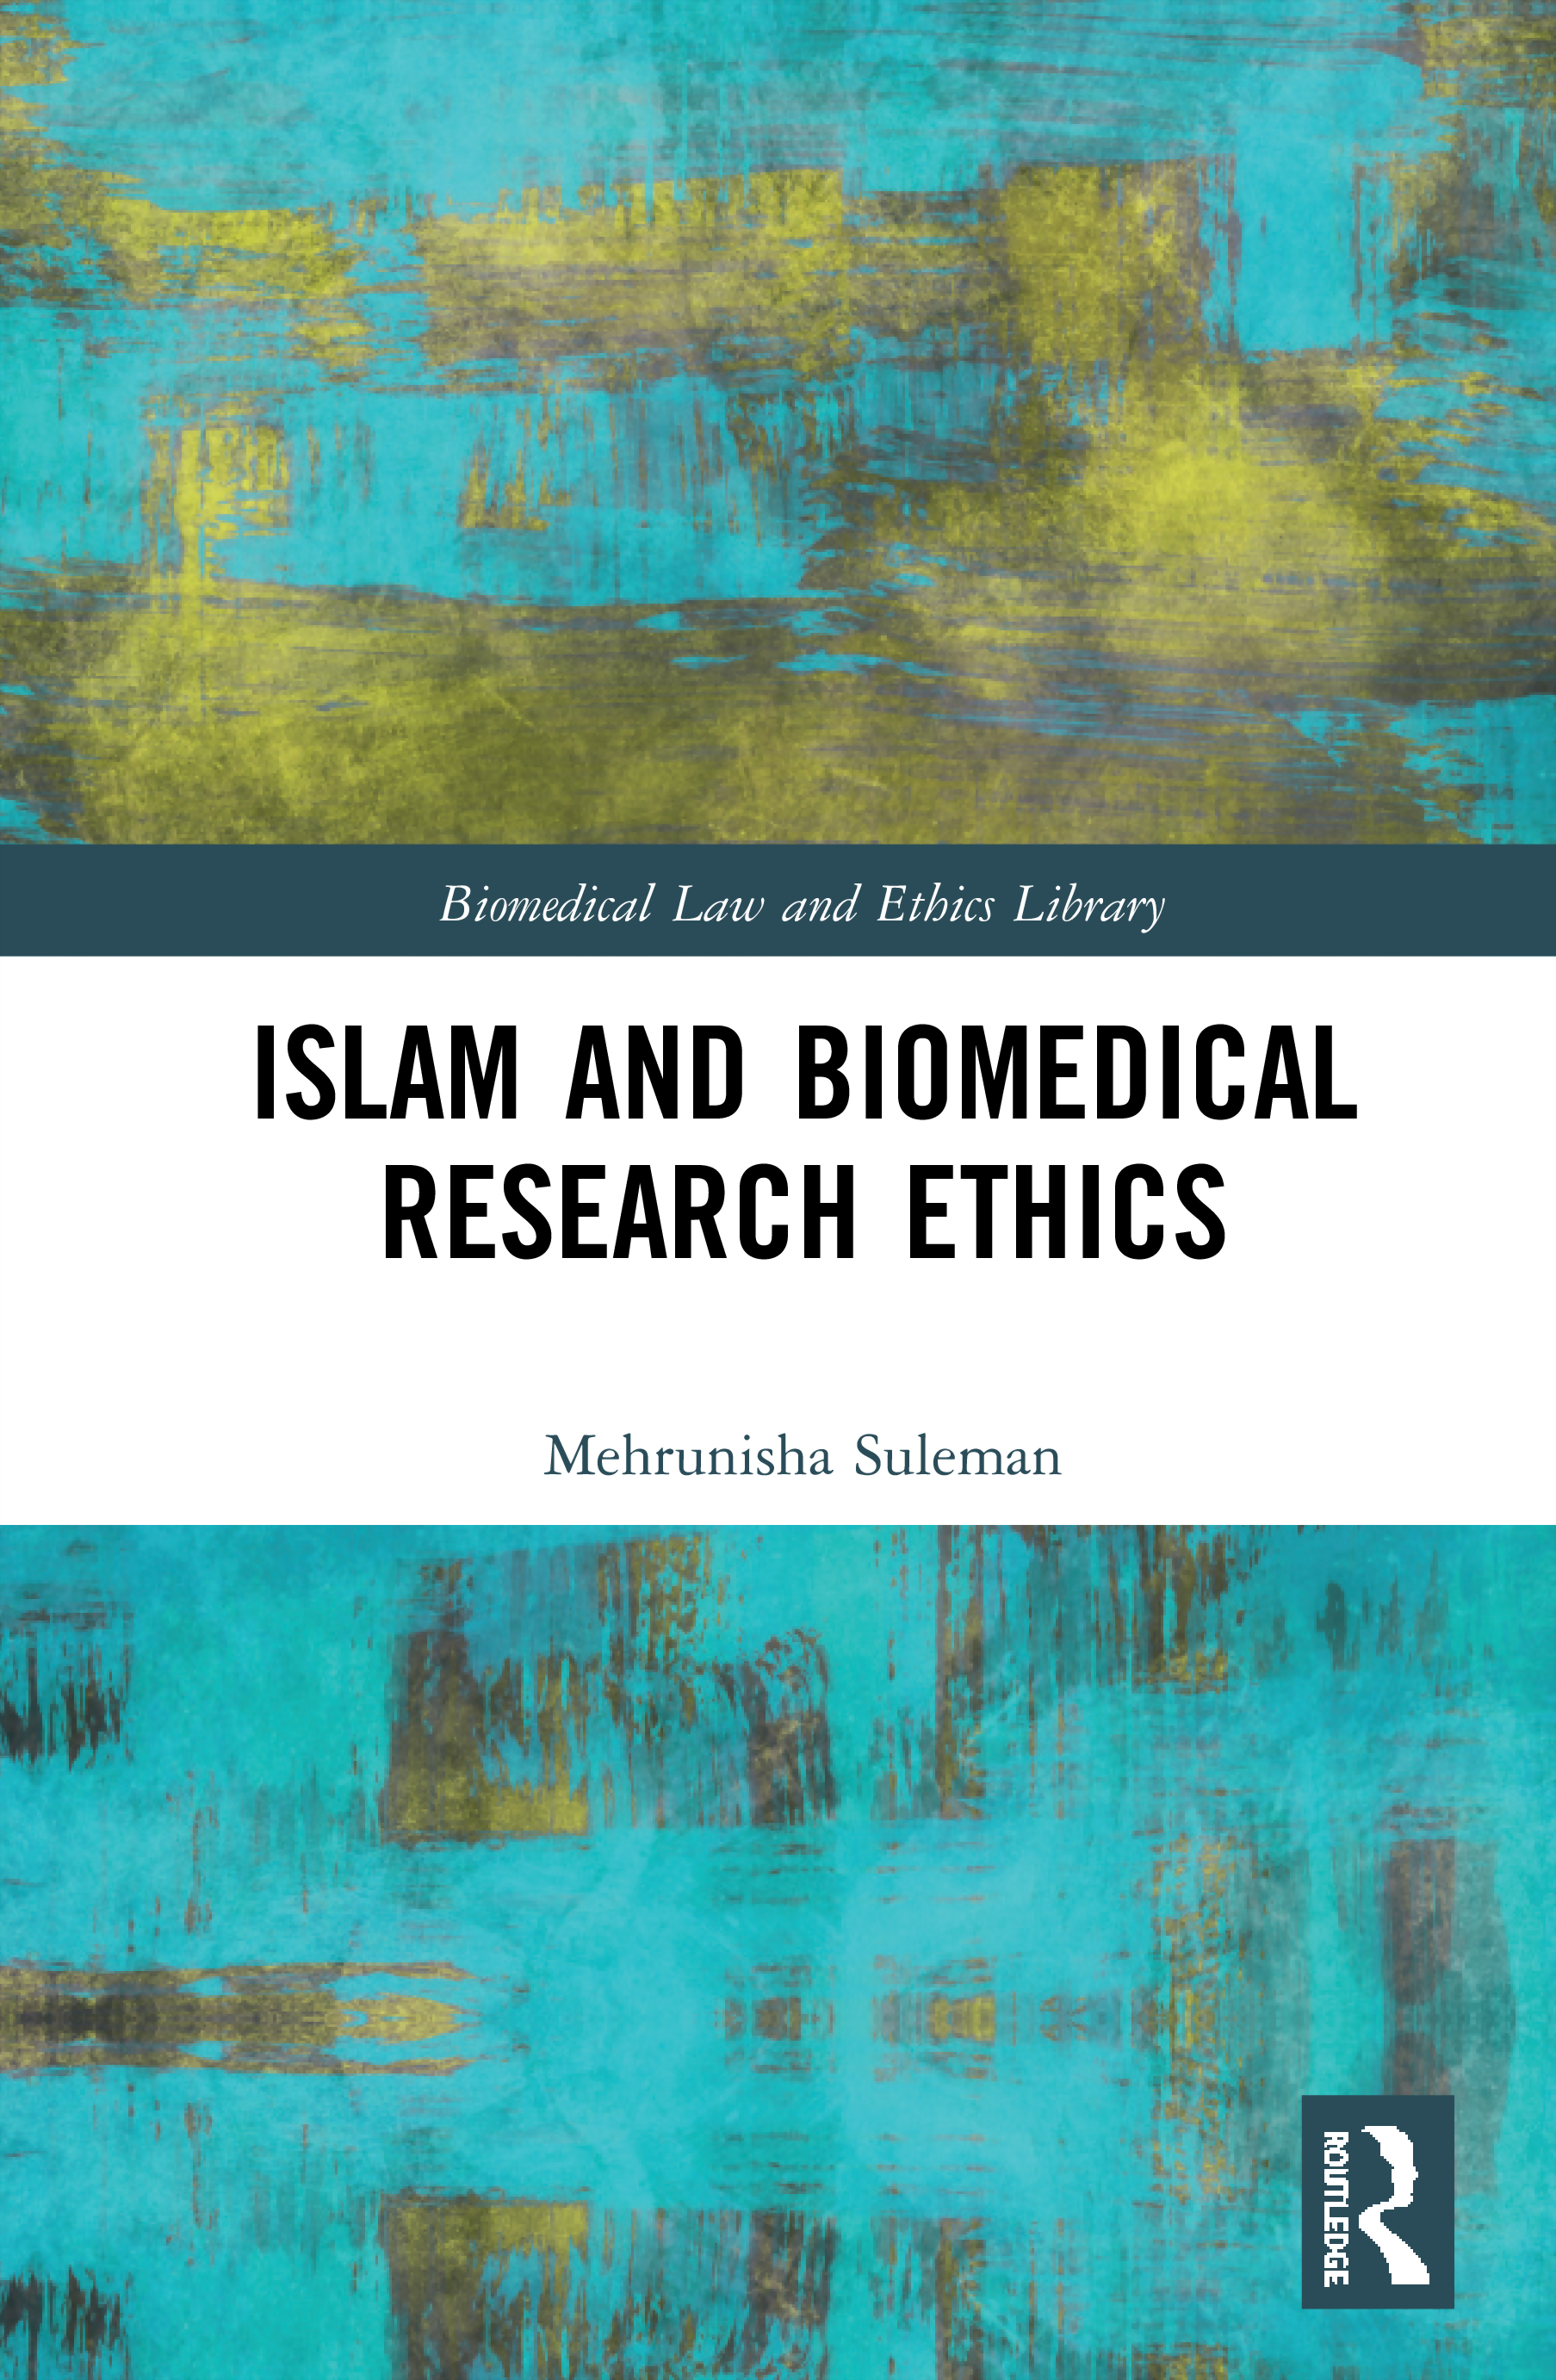 Islam and Biomedical Research Ethics book cover